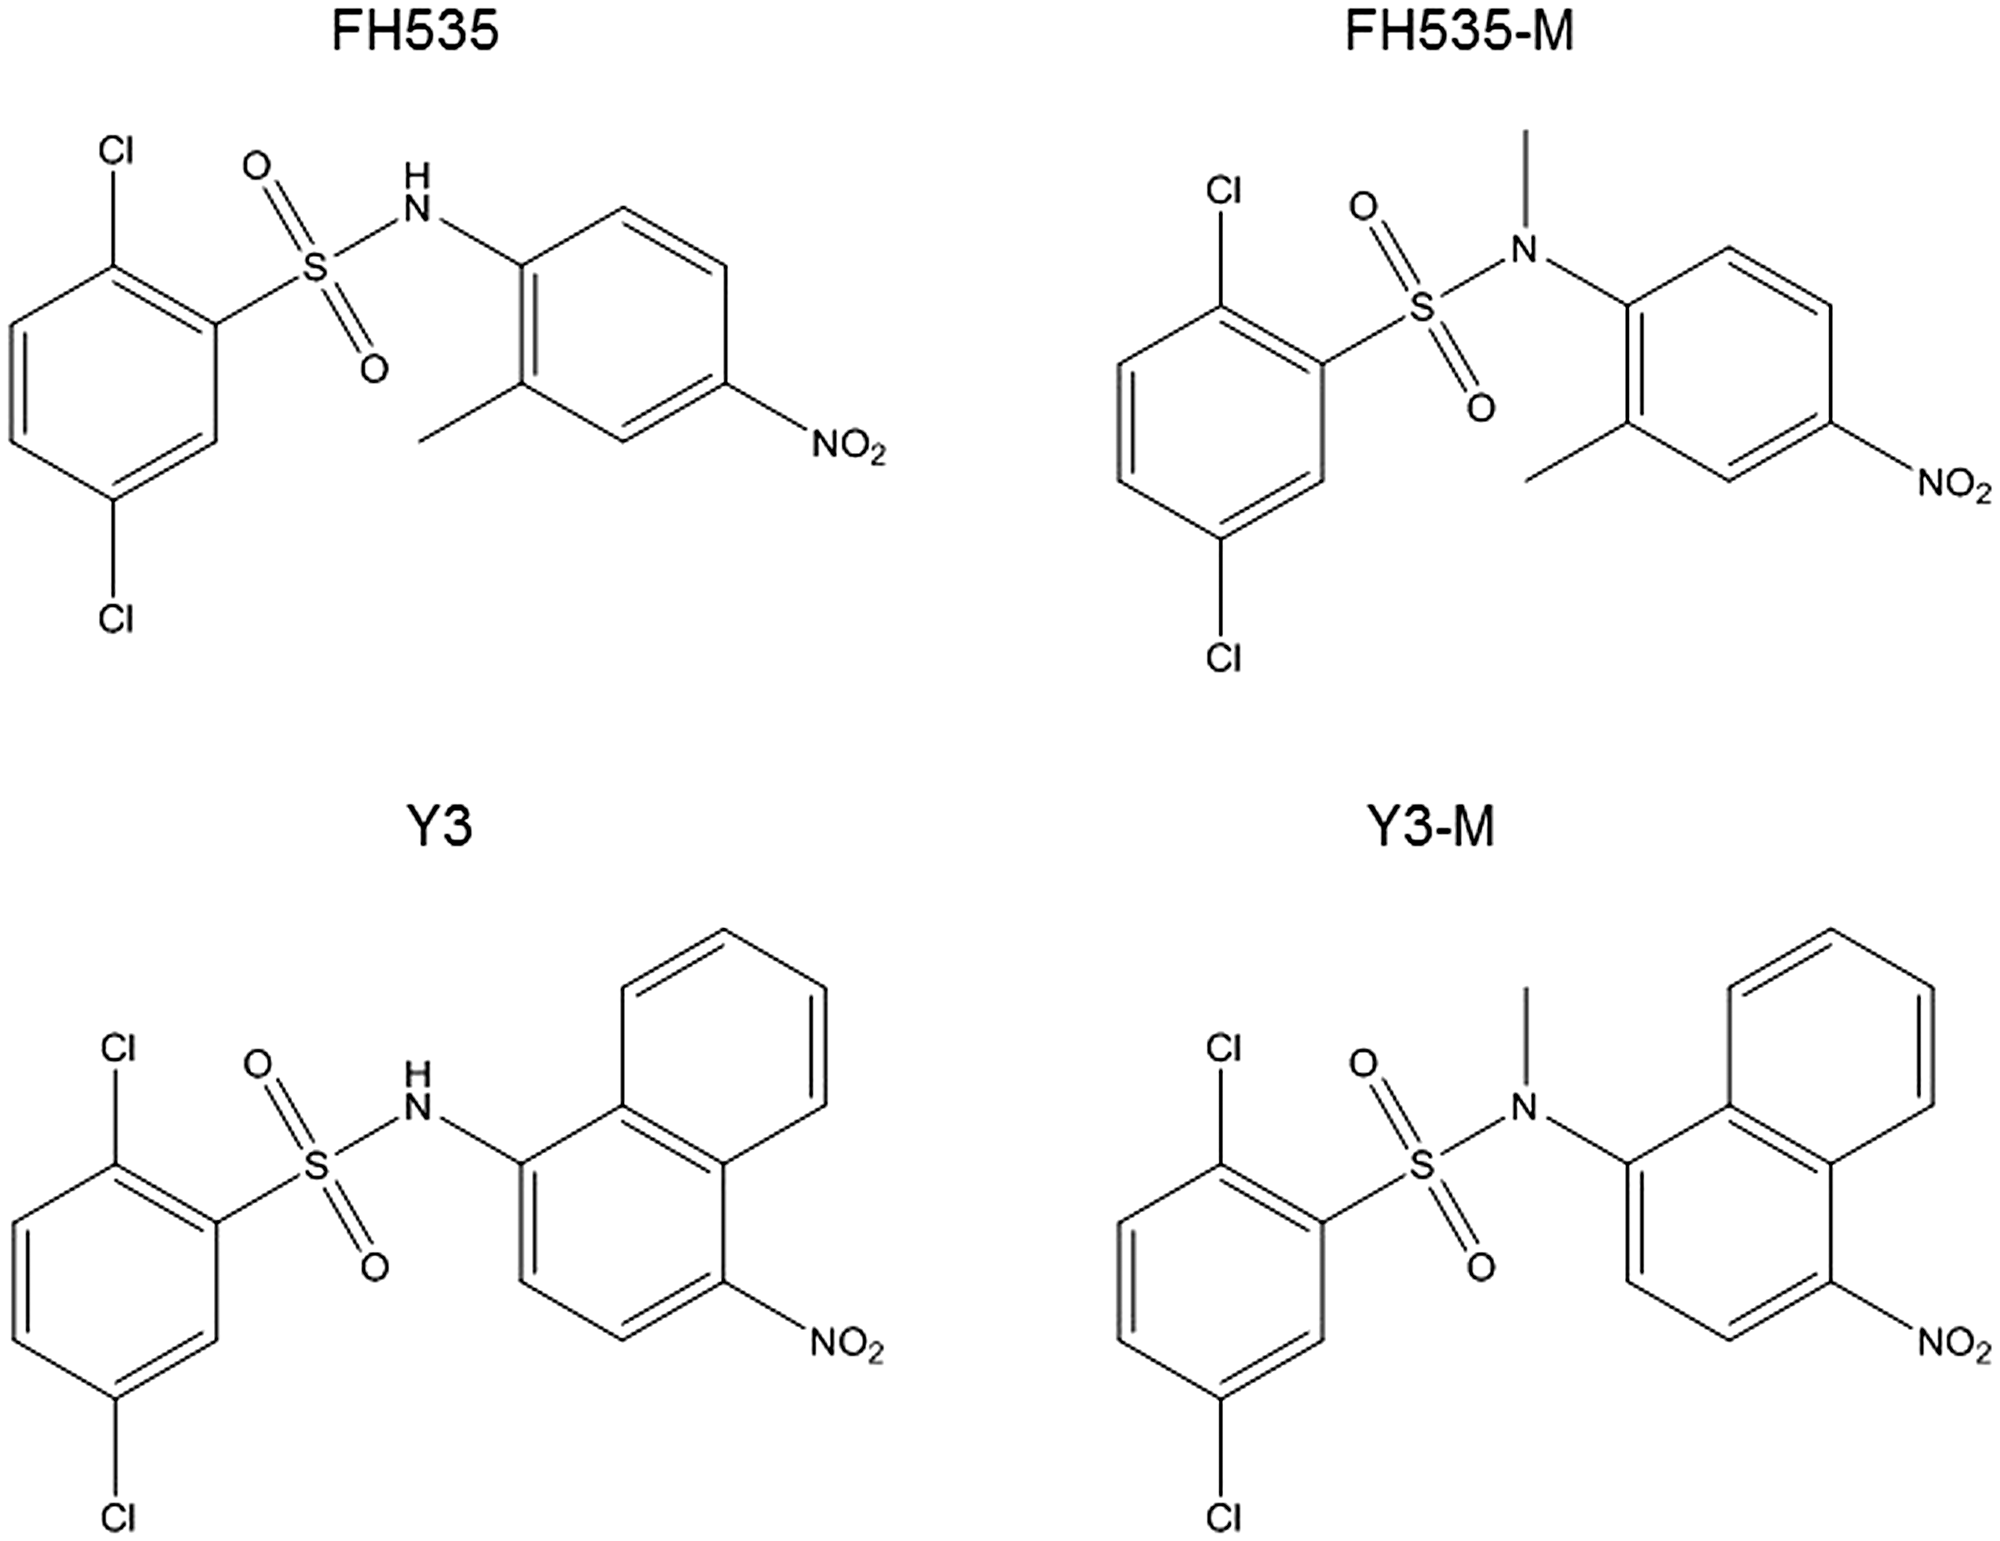 Structures of FH535 and Y3 and methylated compounds.